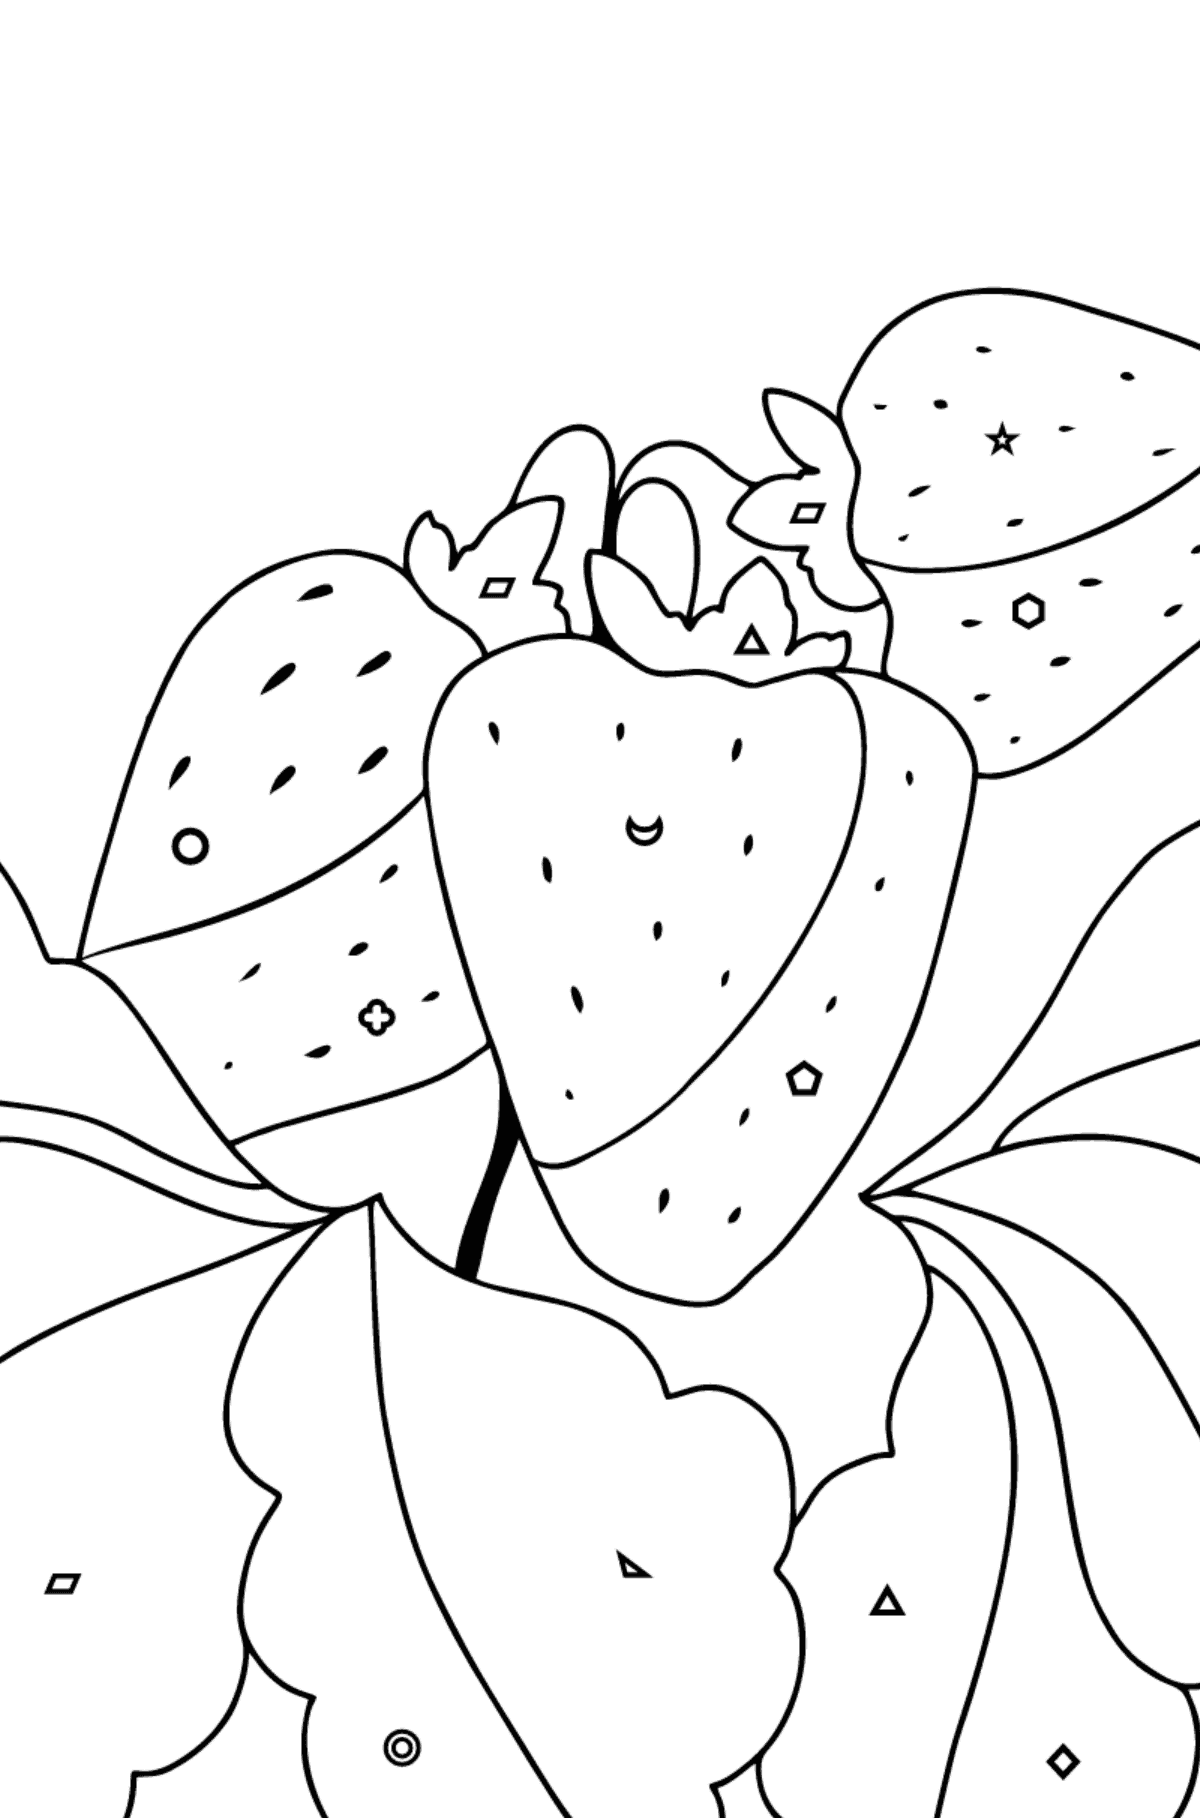 Summer Coloring Page - Strawberries are Ready on the Garden Bed - Coloring by Geometric Shapes for Kids